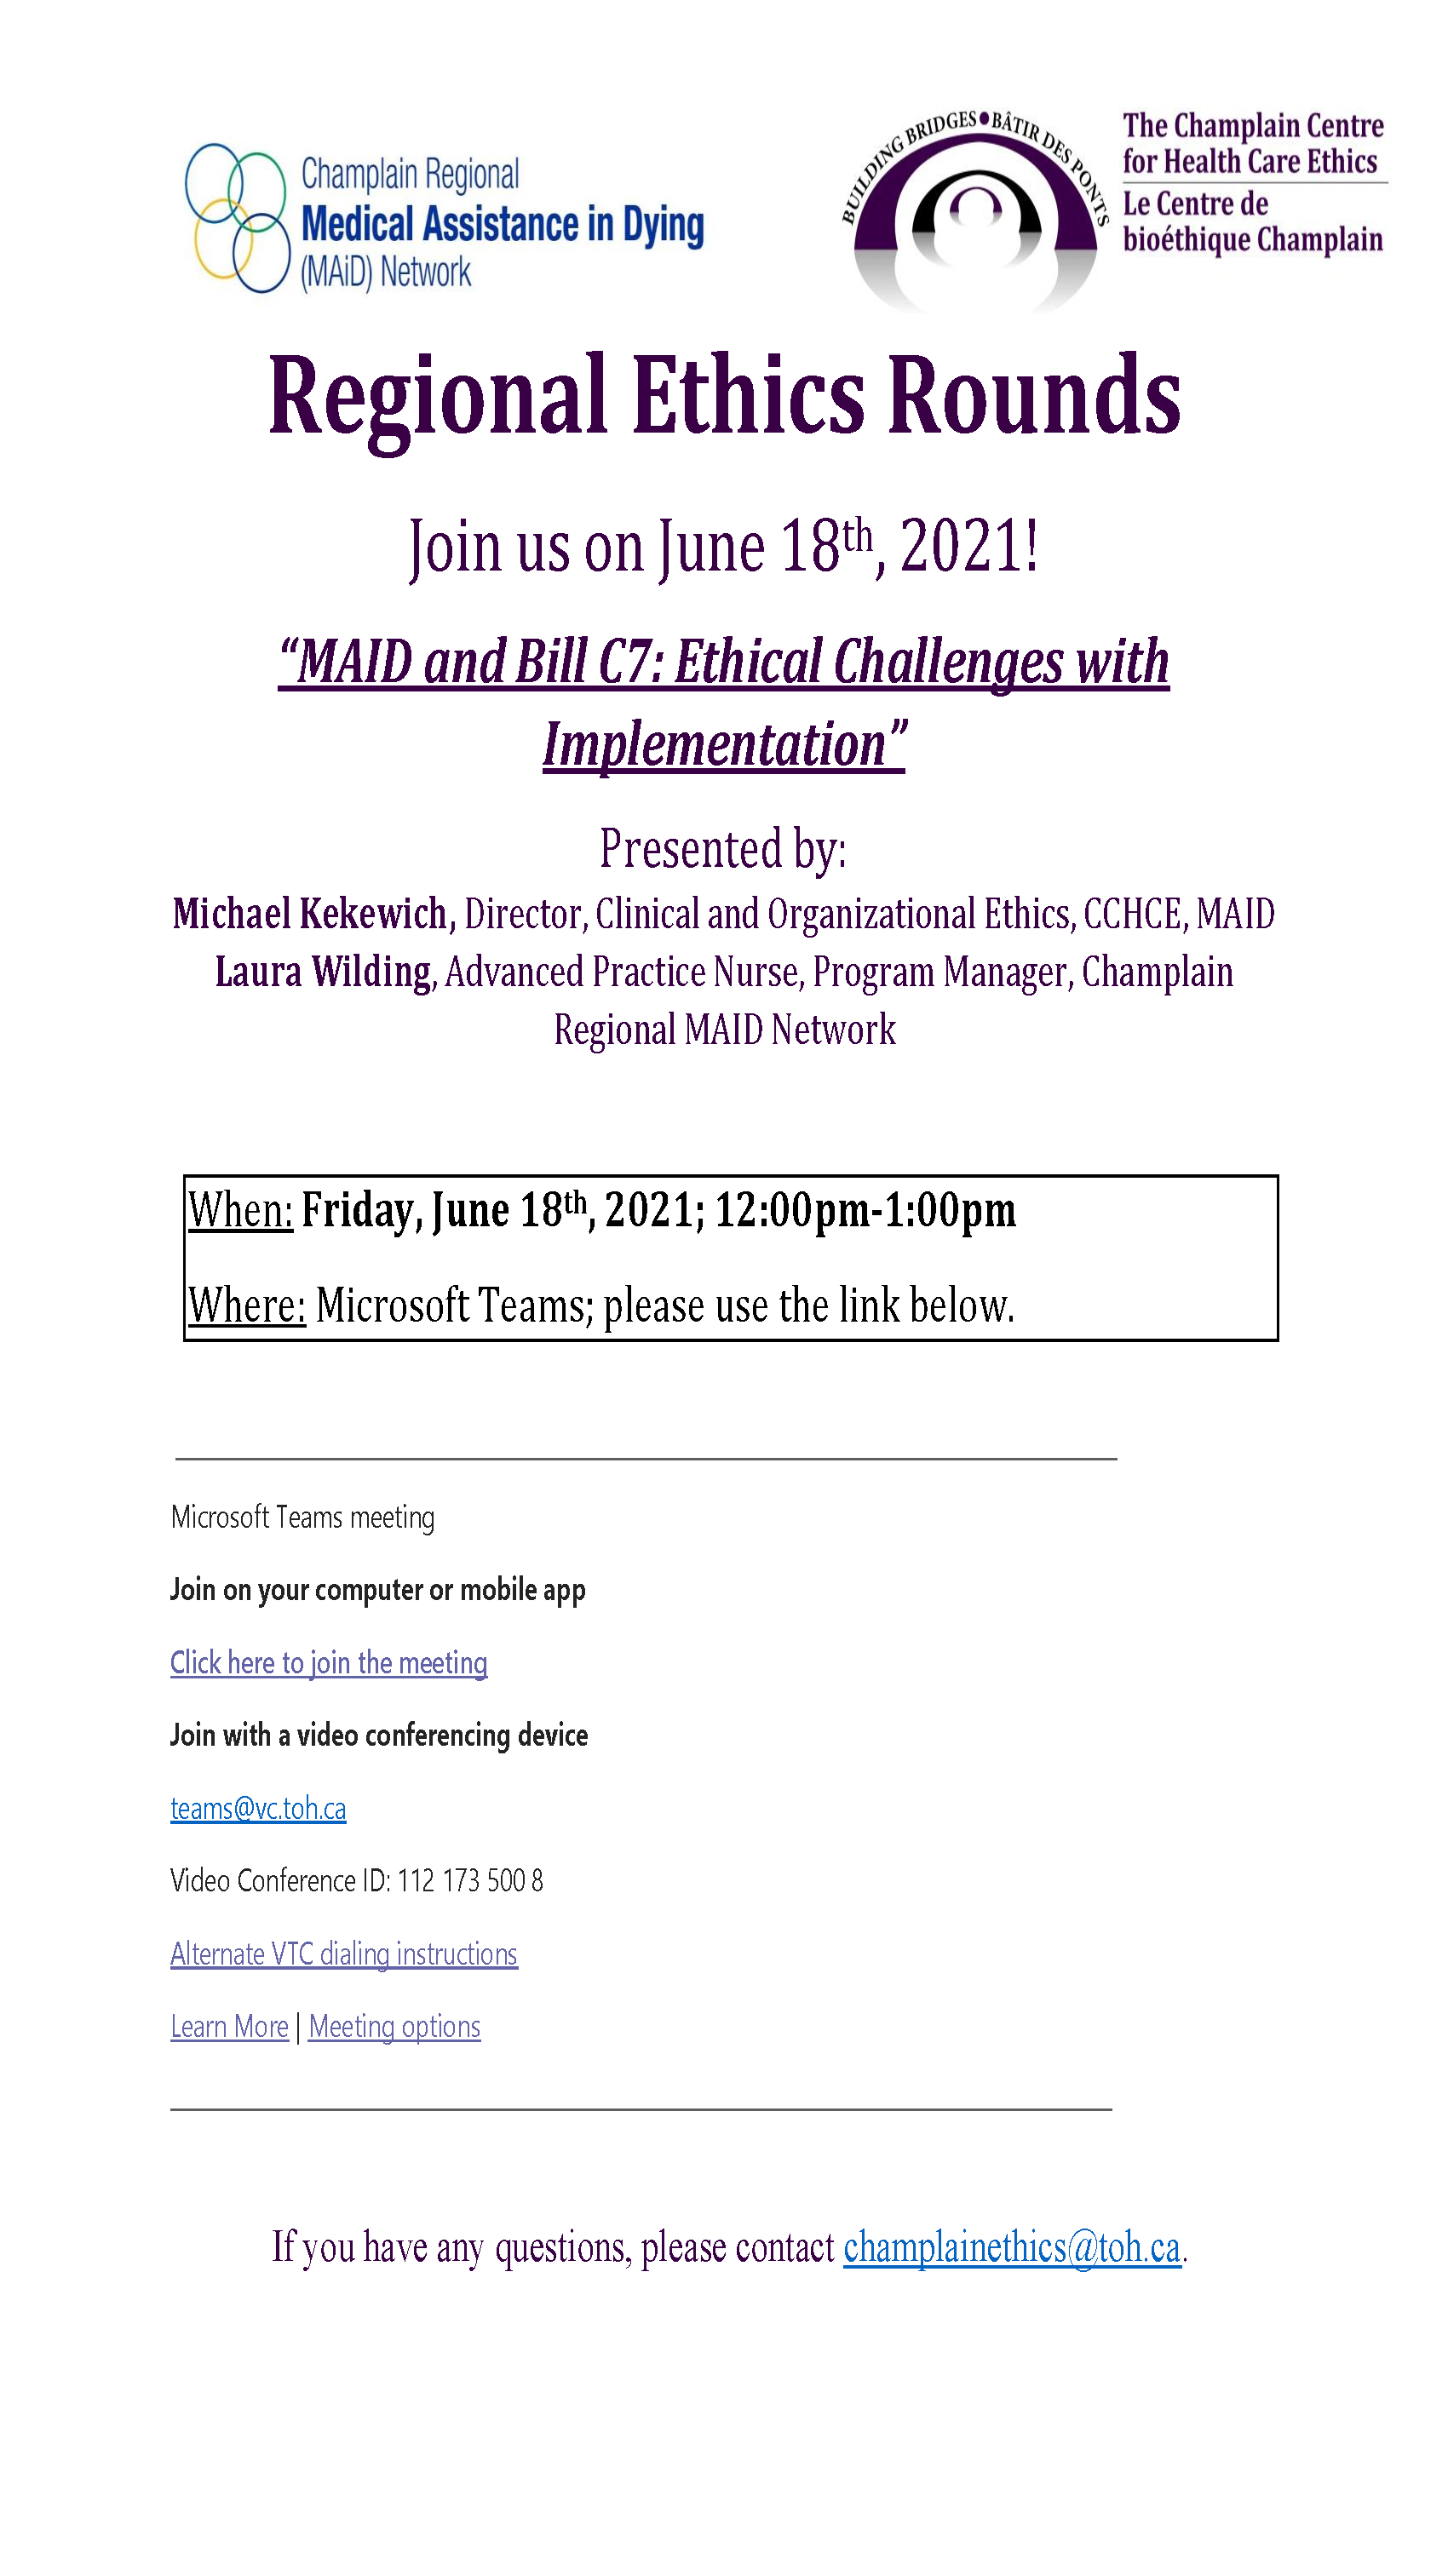 Regional Ethics Rounds MAID and Bill C20 Ethical Challenges with ...